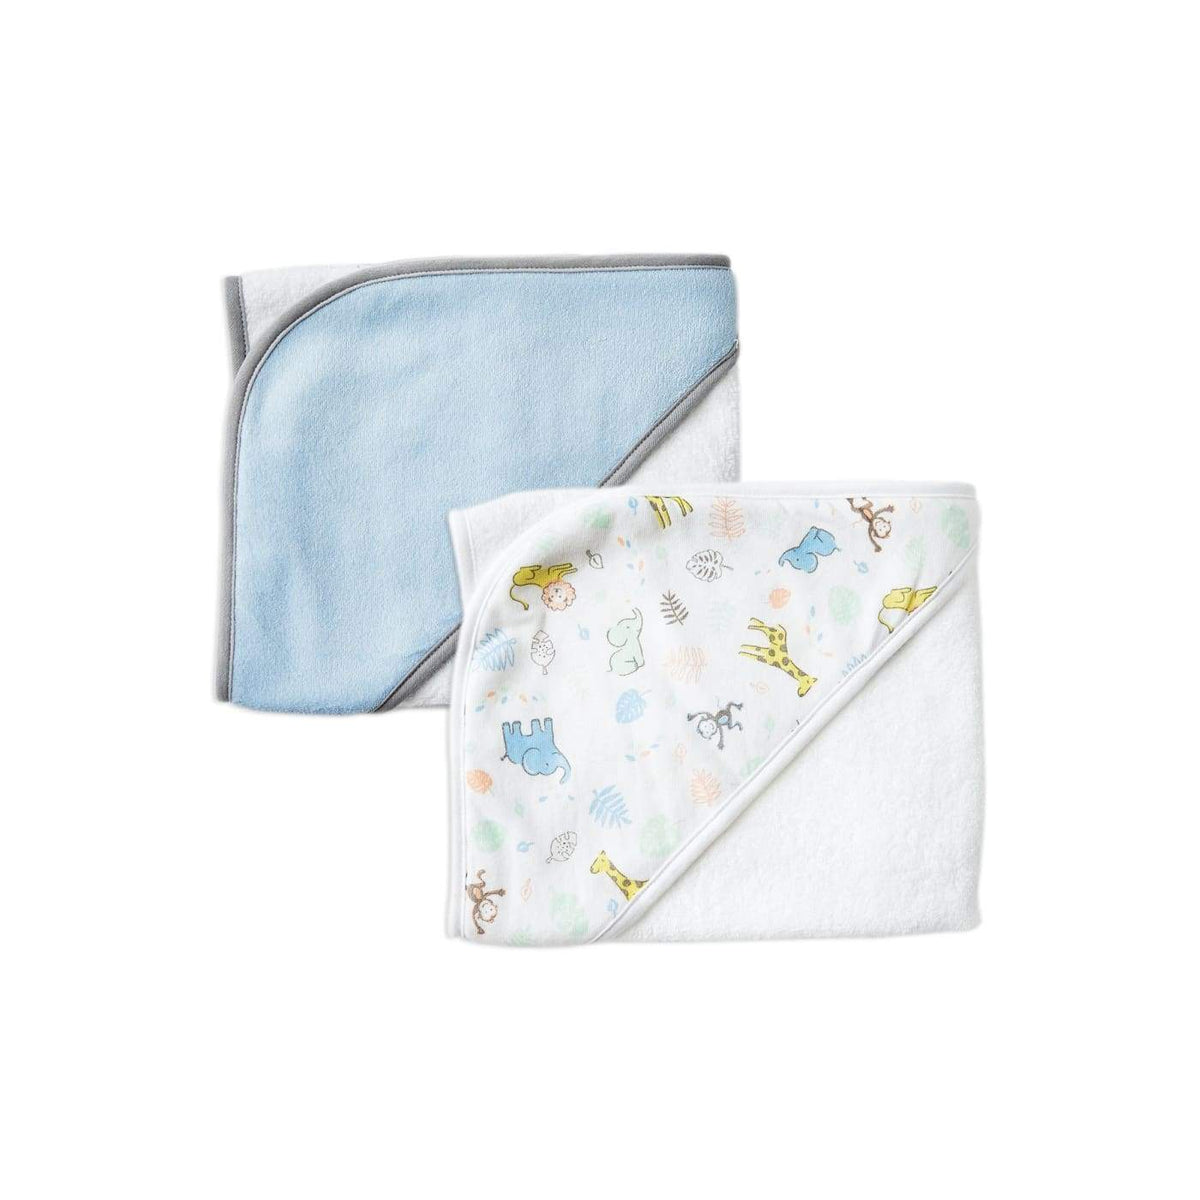 The Little Linen Company Hooded Towel 2pk - Jungle Mates - BATHTIME & CHANGING - TOWELS/WASHERS